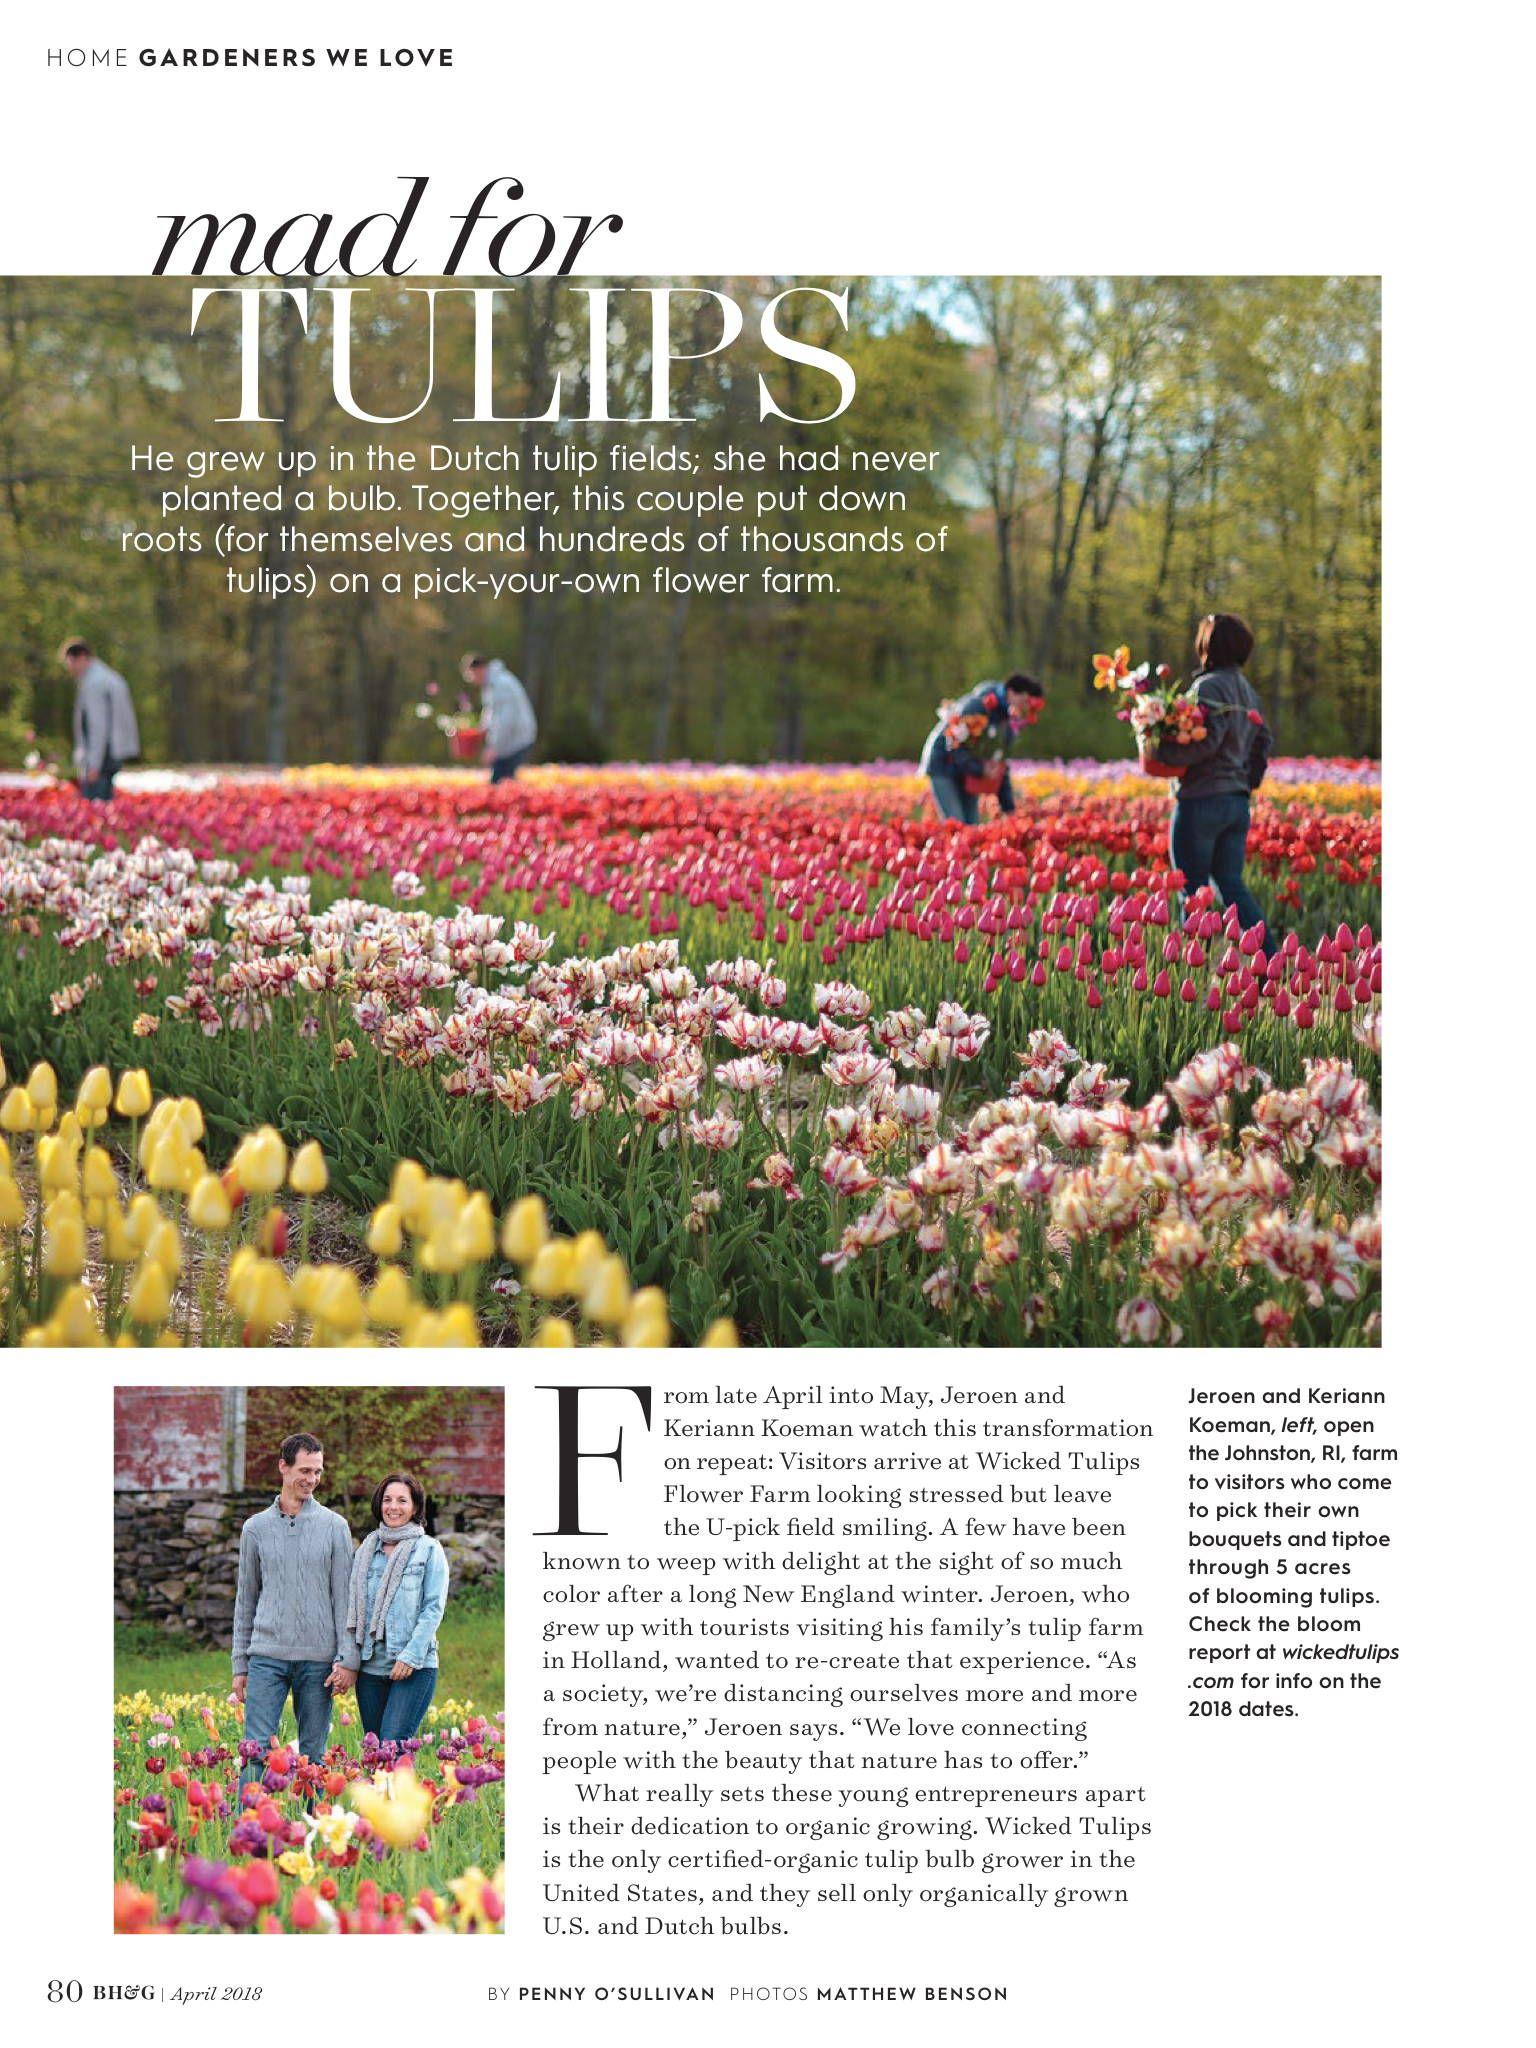 better homes and gardens article april 2018 – wicked tulips flower